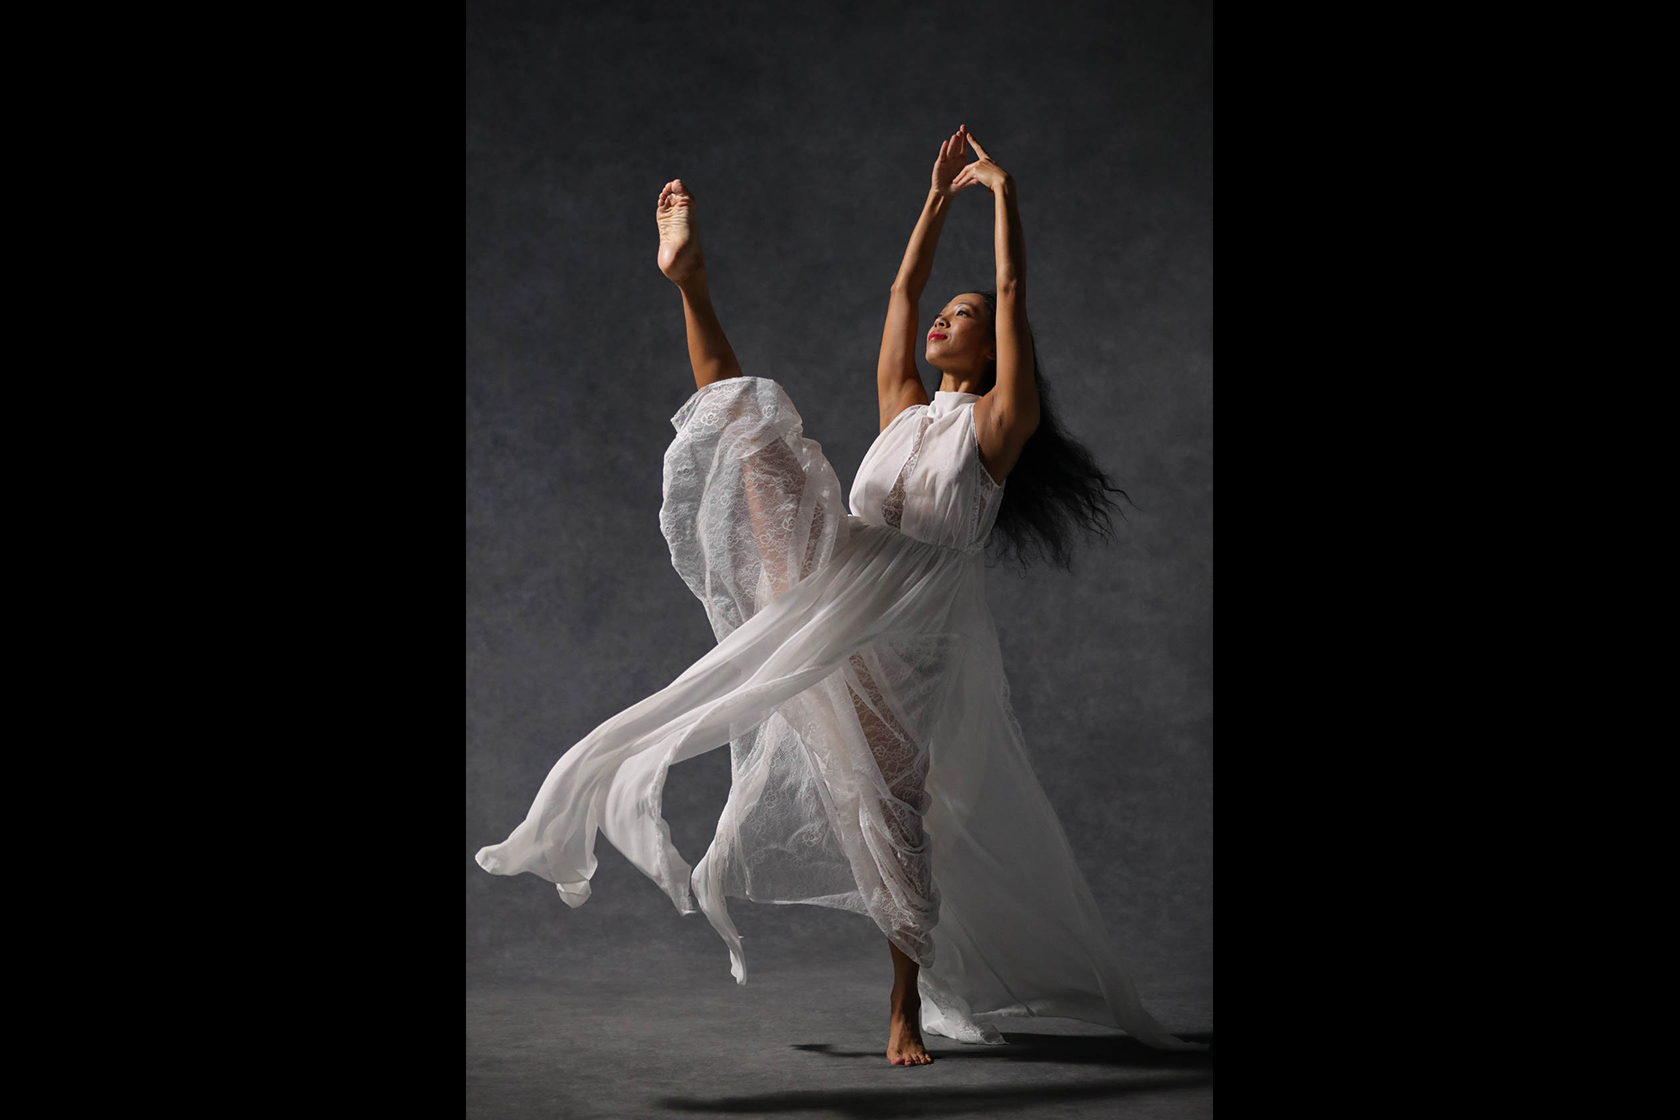 Dancer taken with Canon EOS-1DX Mark II DSLR camera